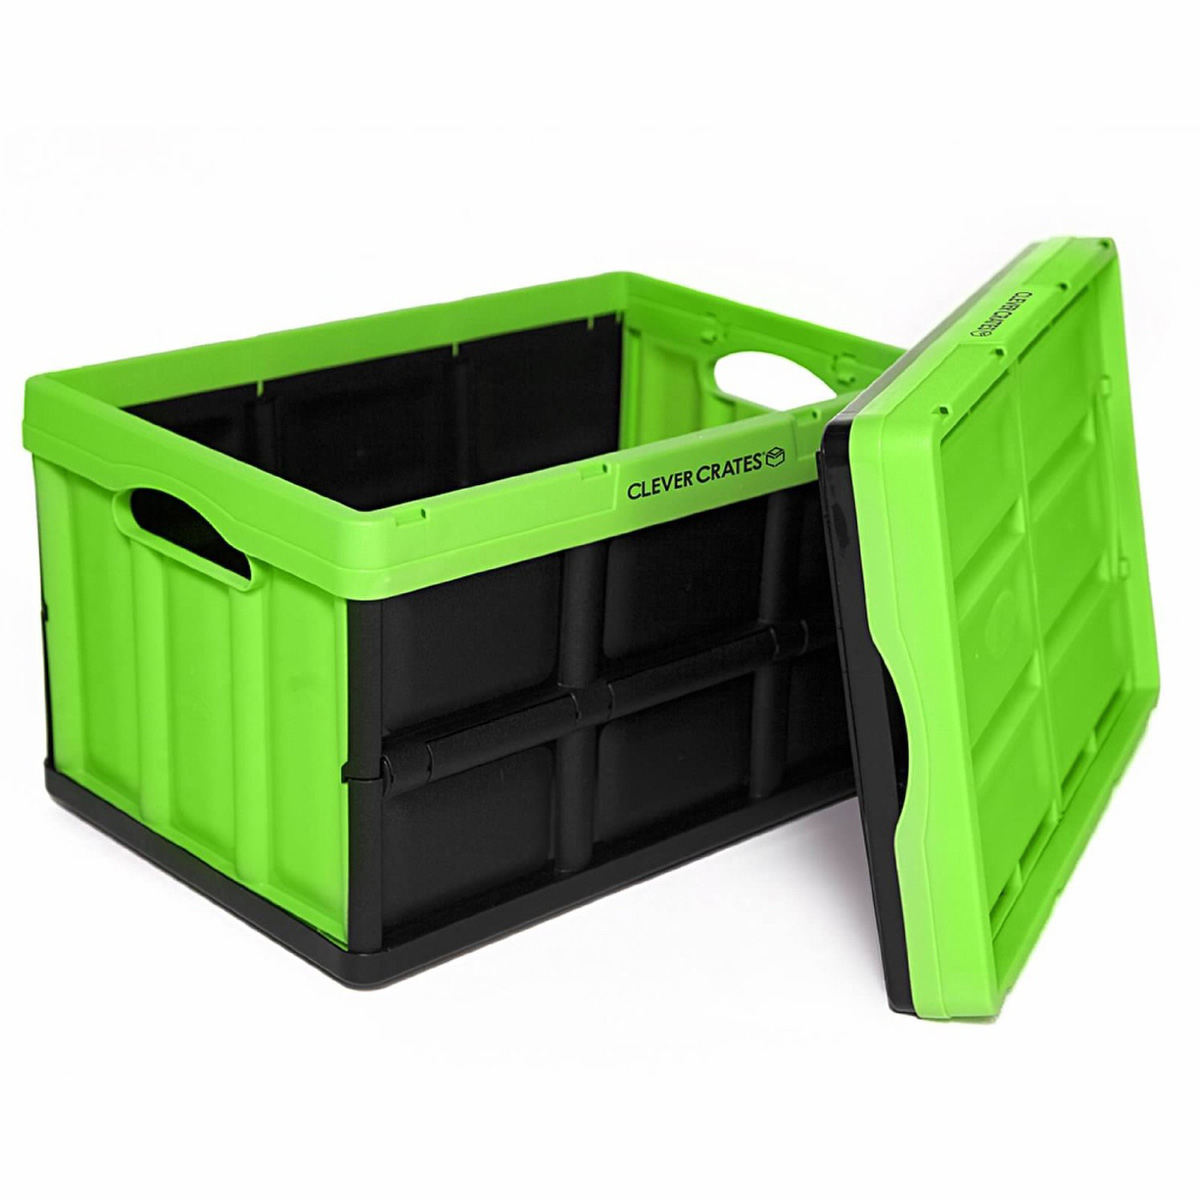 Clever Crates Collapsible All Purpose Utility